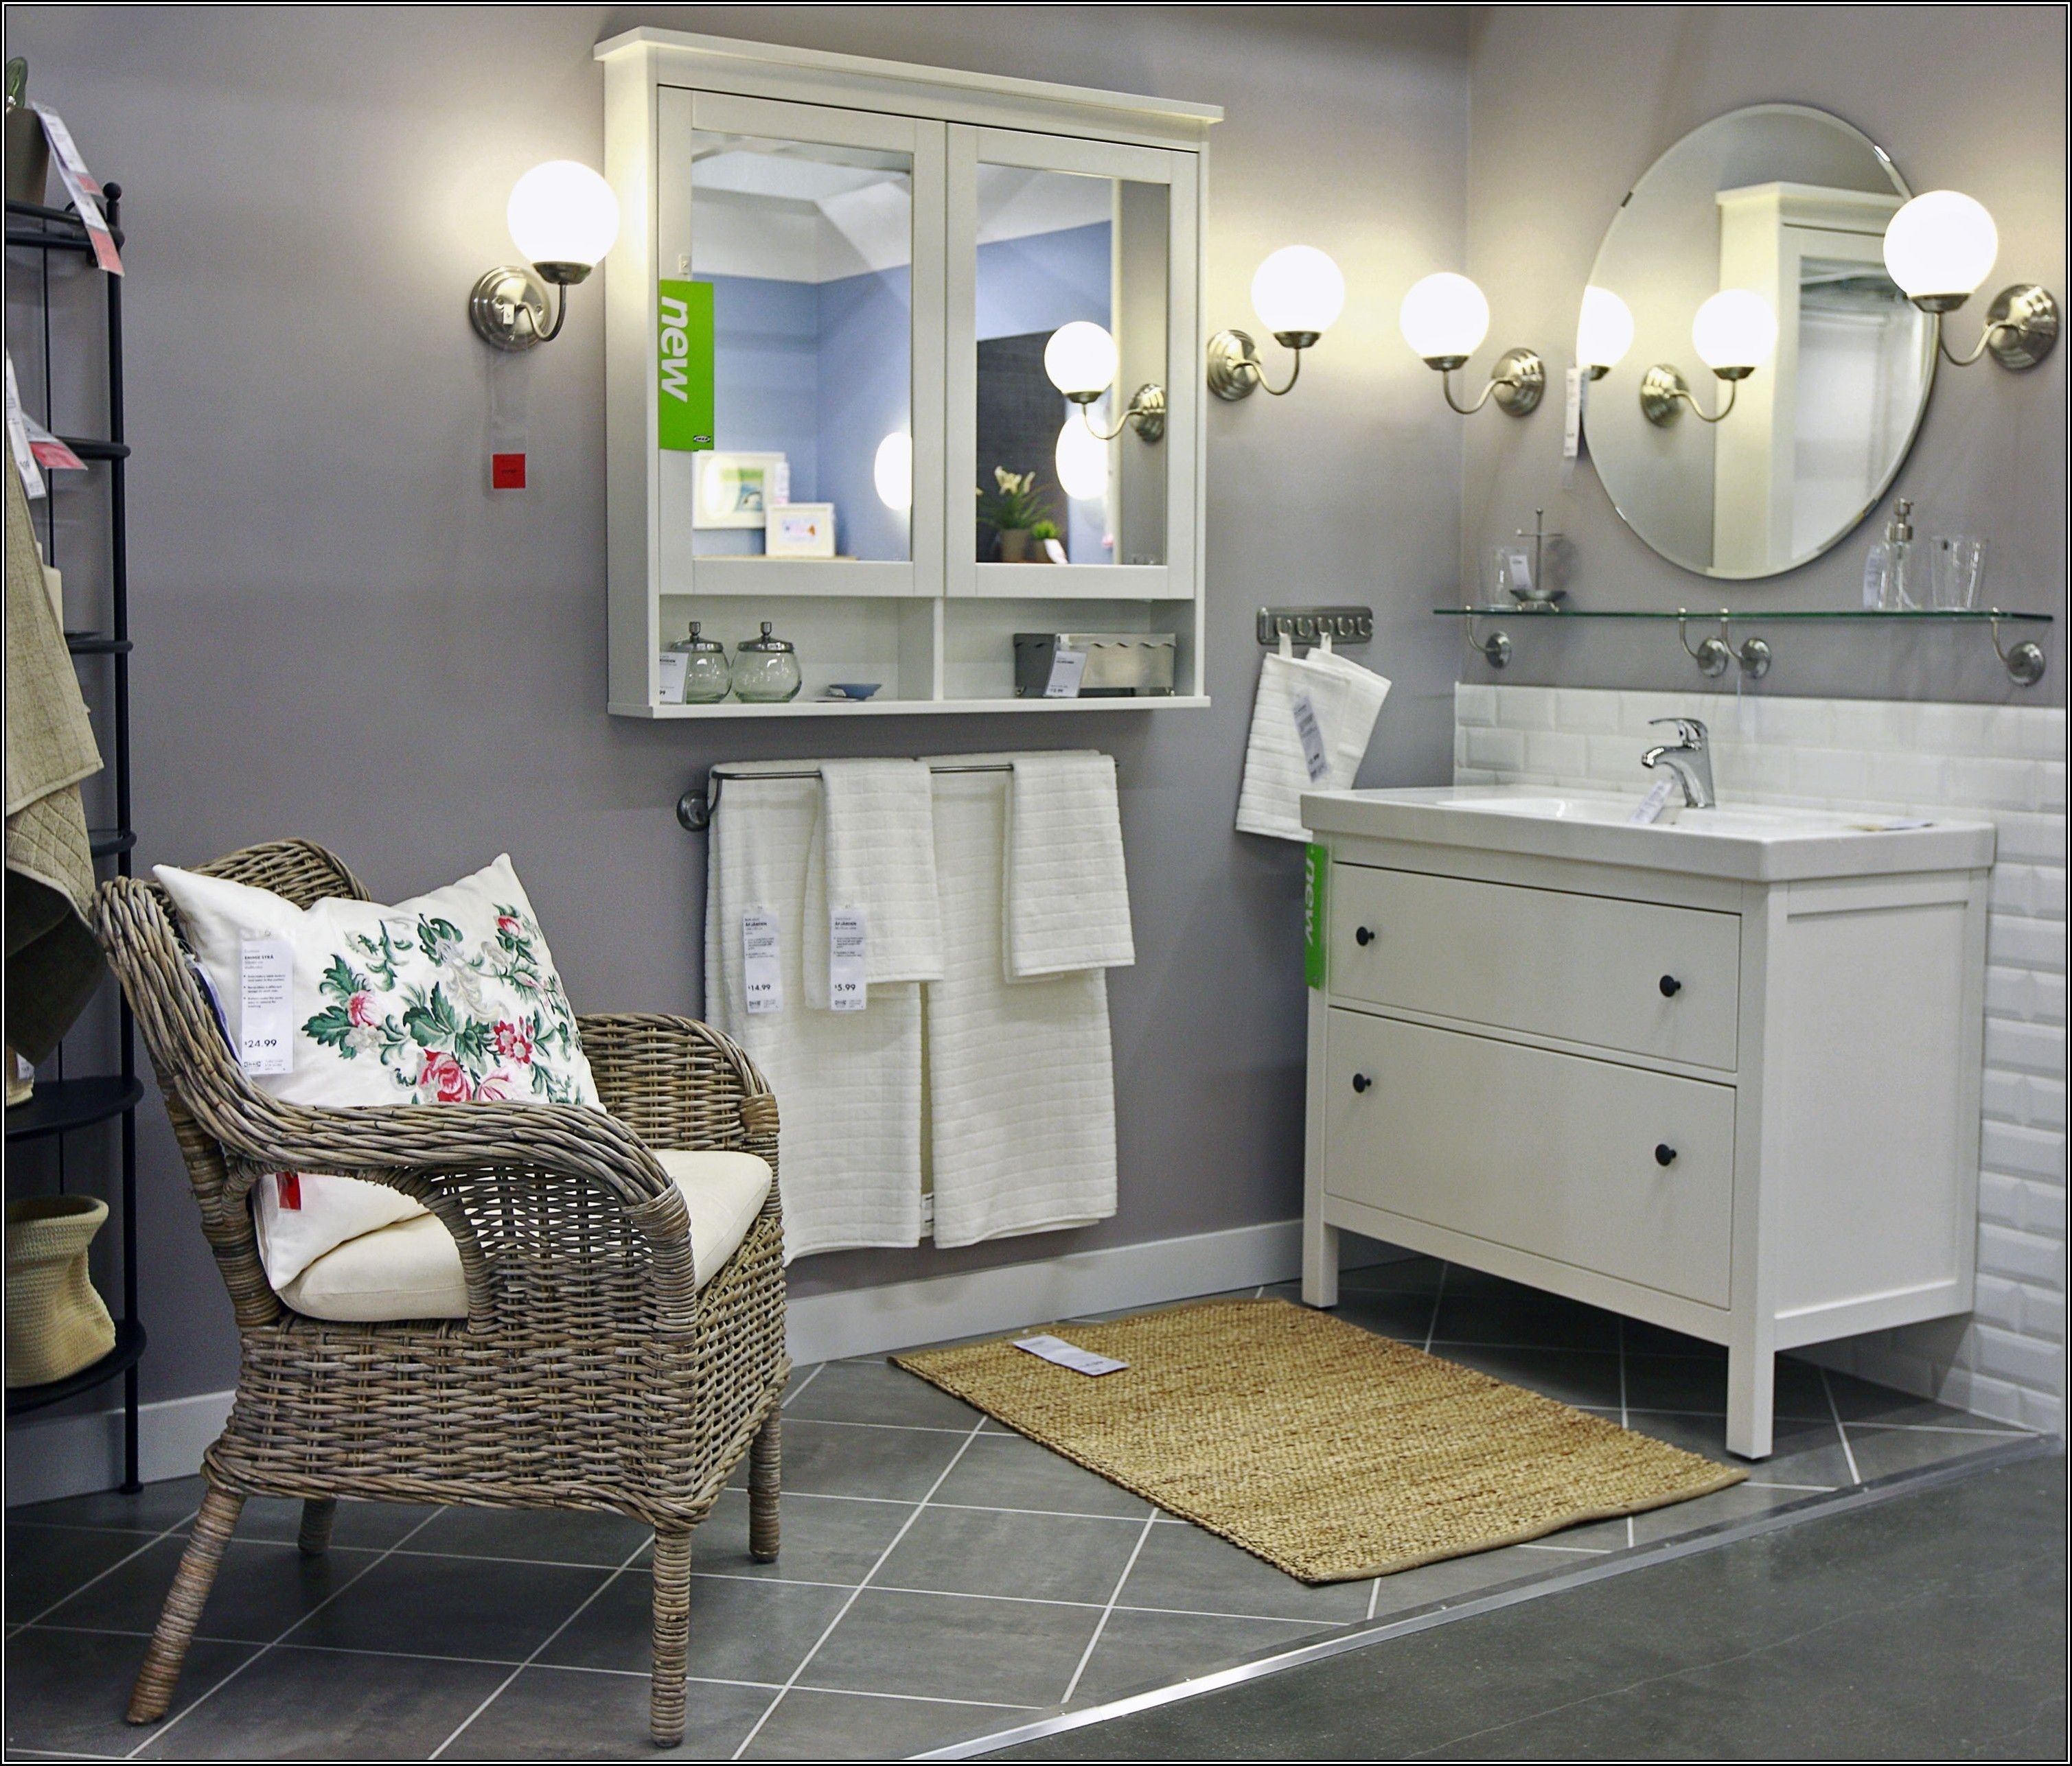 Bathroom Designs Ikea Floating Vanity Wonderful Design Ikea Bathroom Ideas Awesome Grey White W